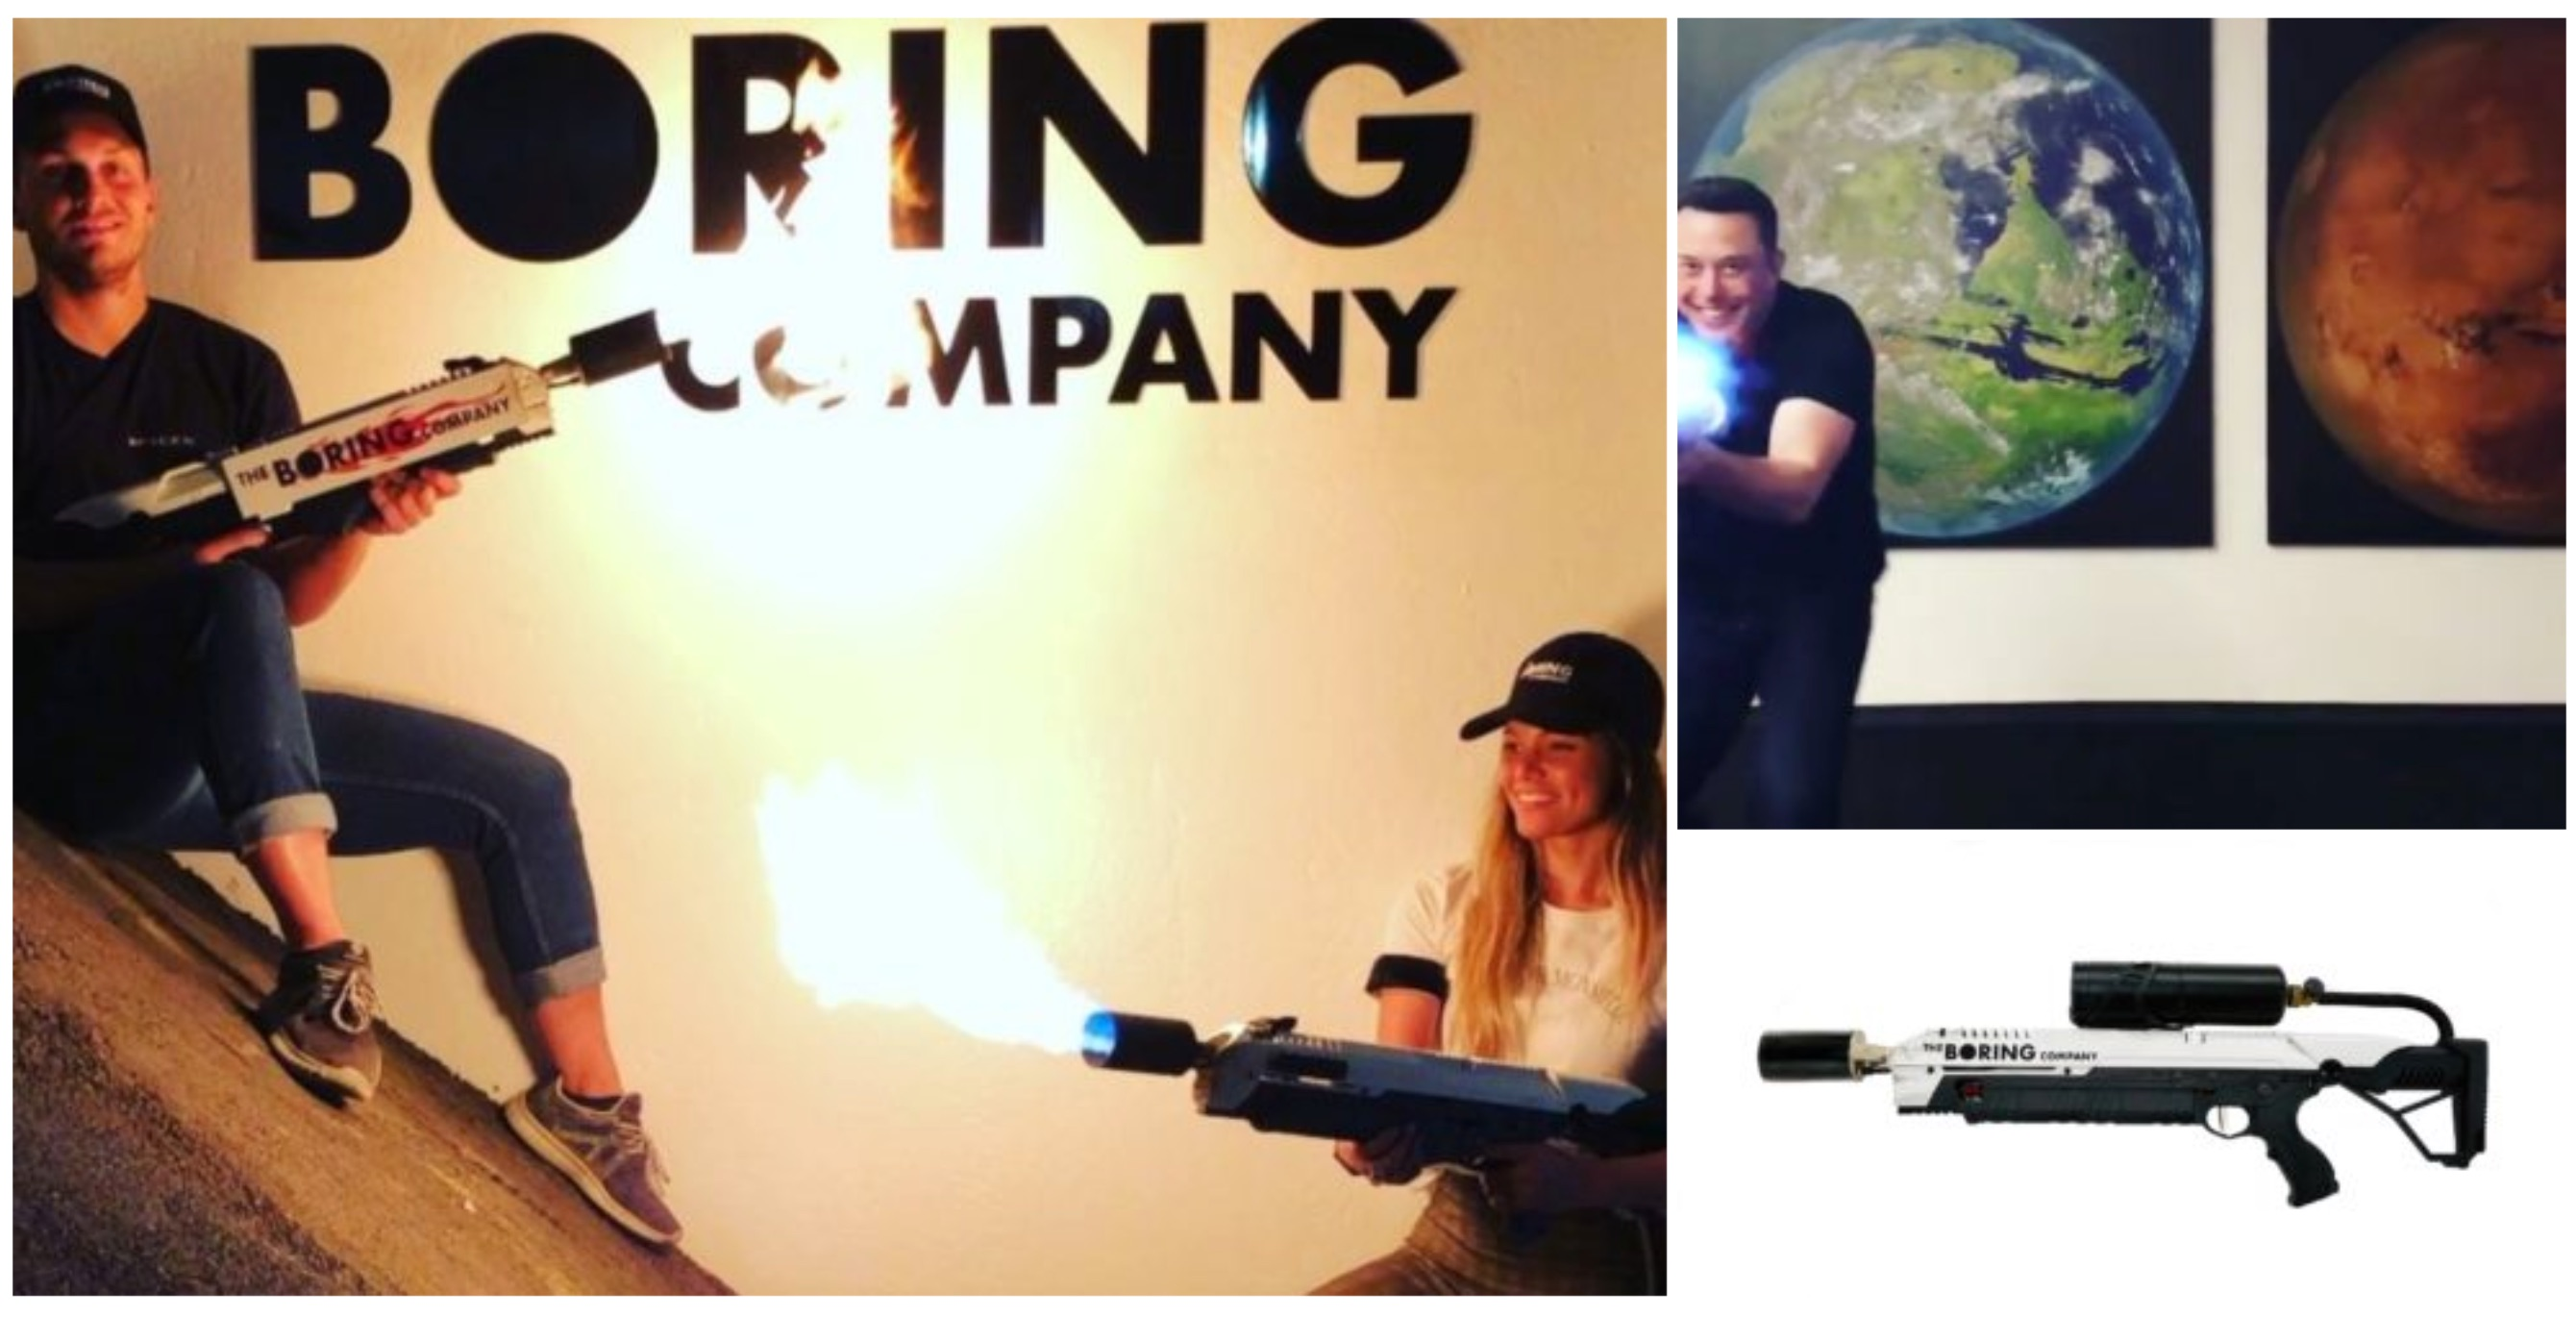 Elon Musk Sold 2m In The Boring Company Flamethrowers In